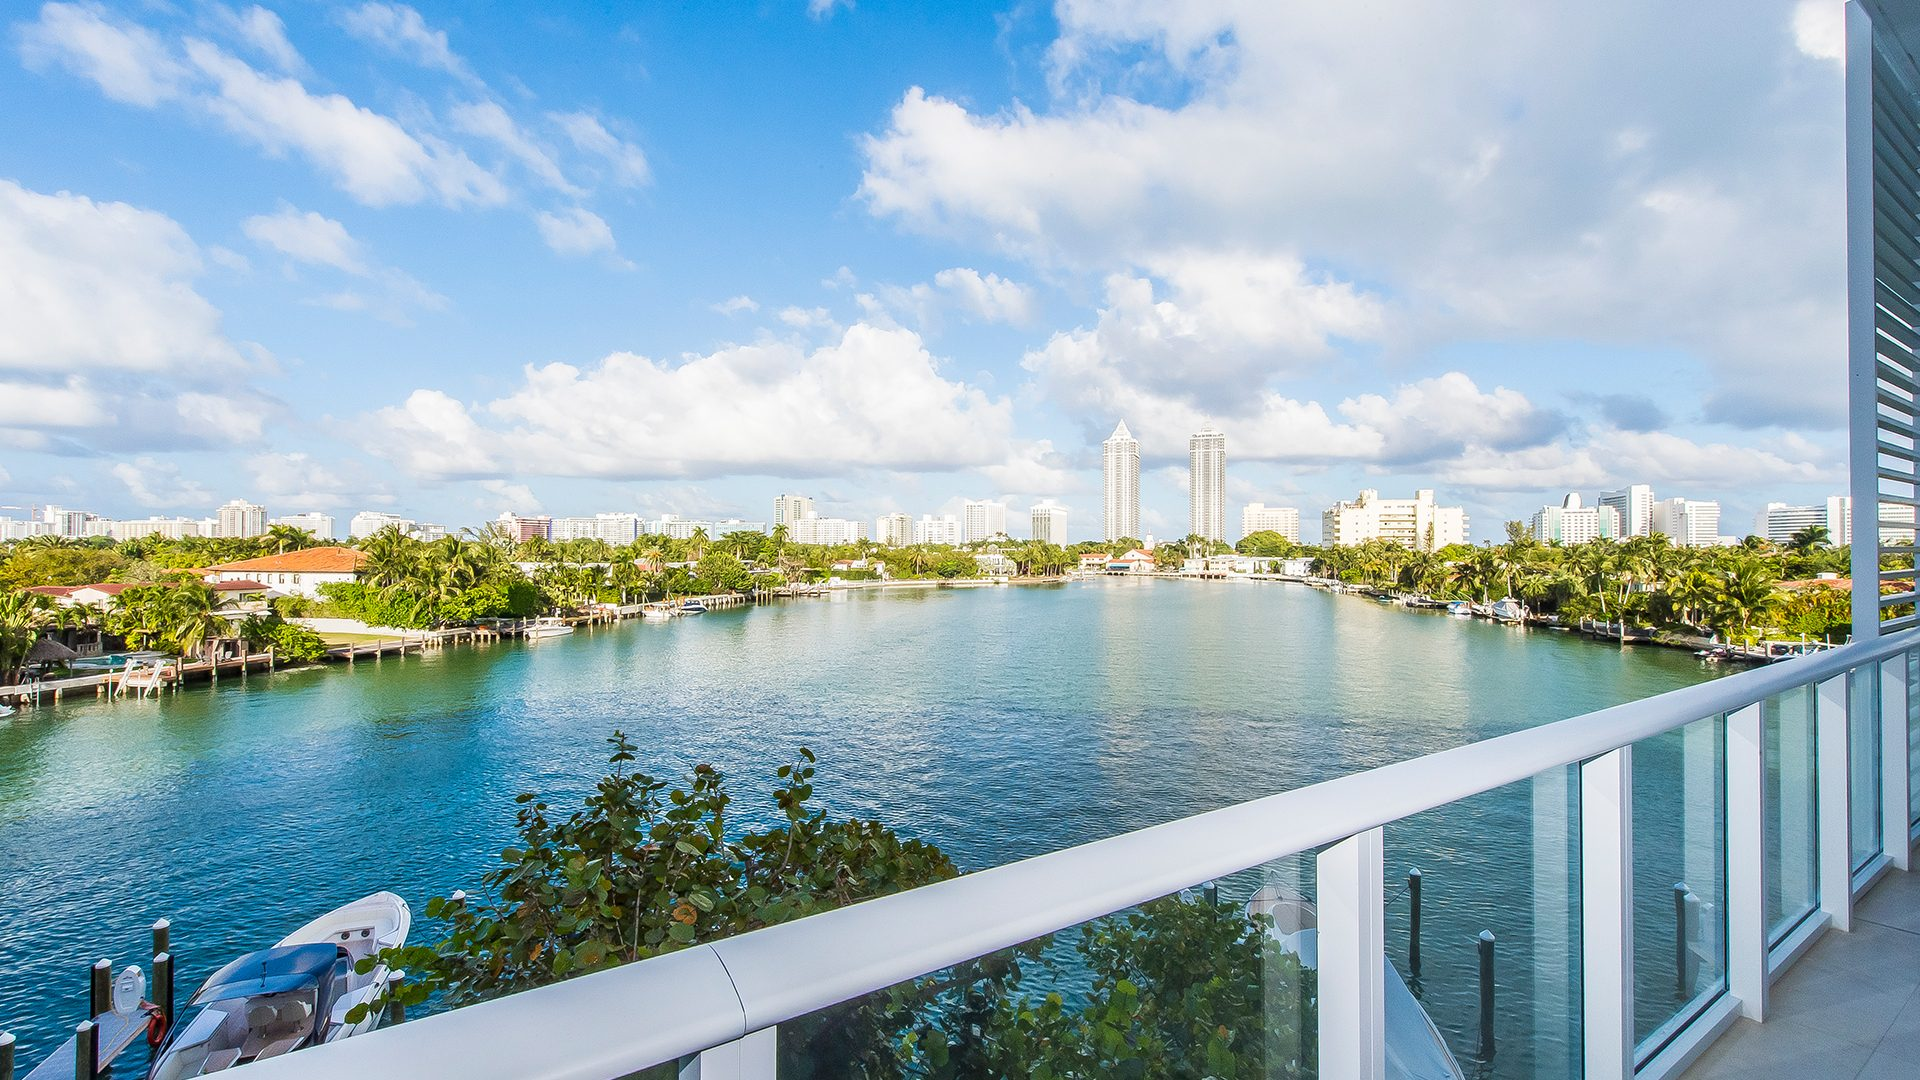 Unit 304 For Sale at Residences at The Ritz-Carlton, Miami Beach Florida 33140